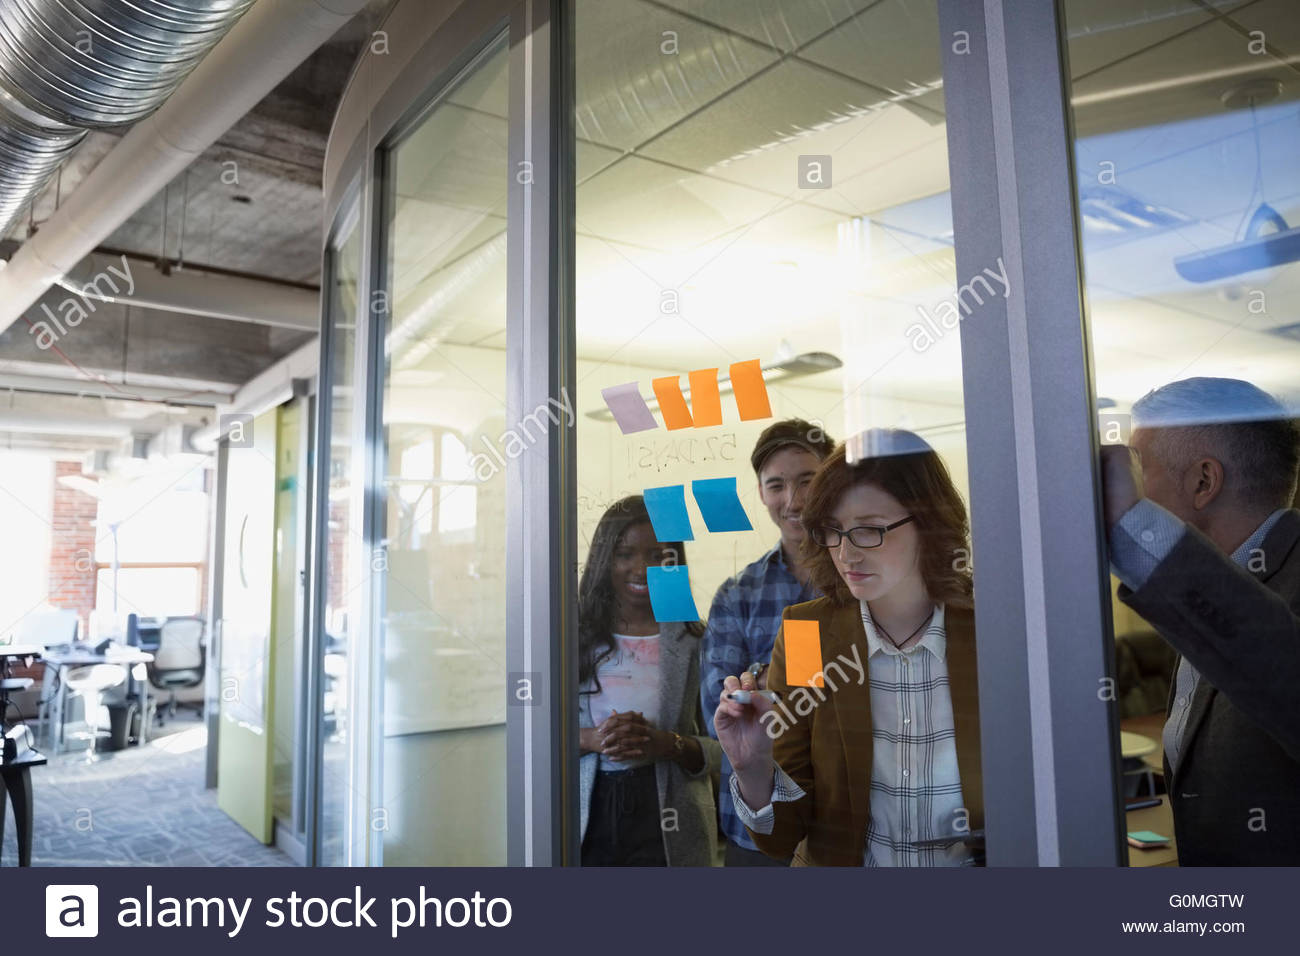 Business people brainstorming with adhesive notes conference room - Stock Image